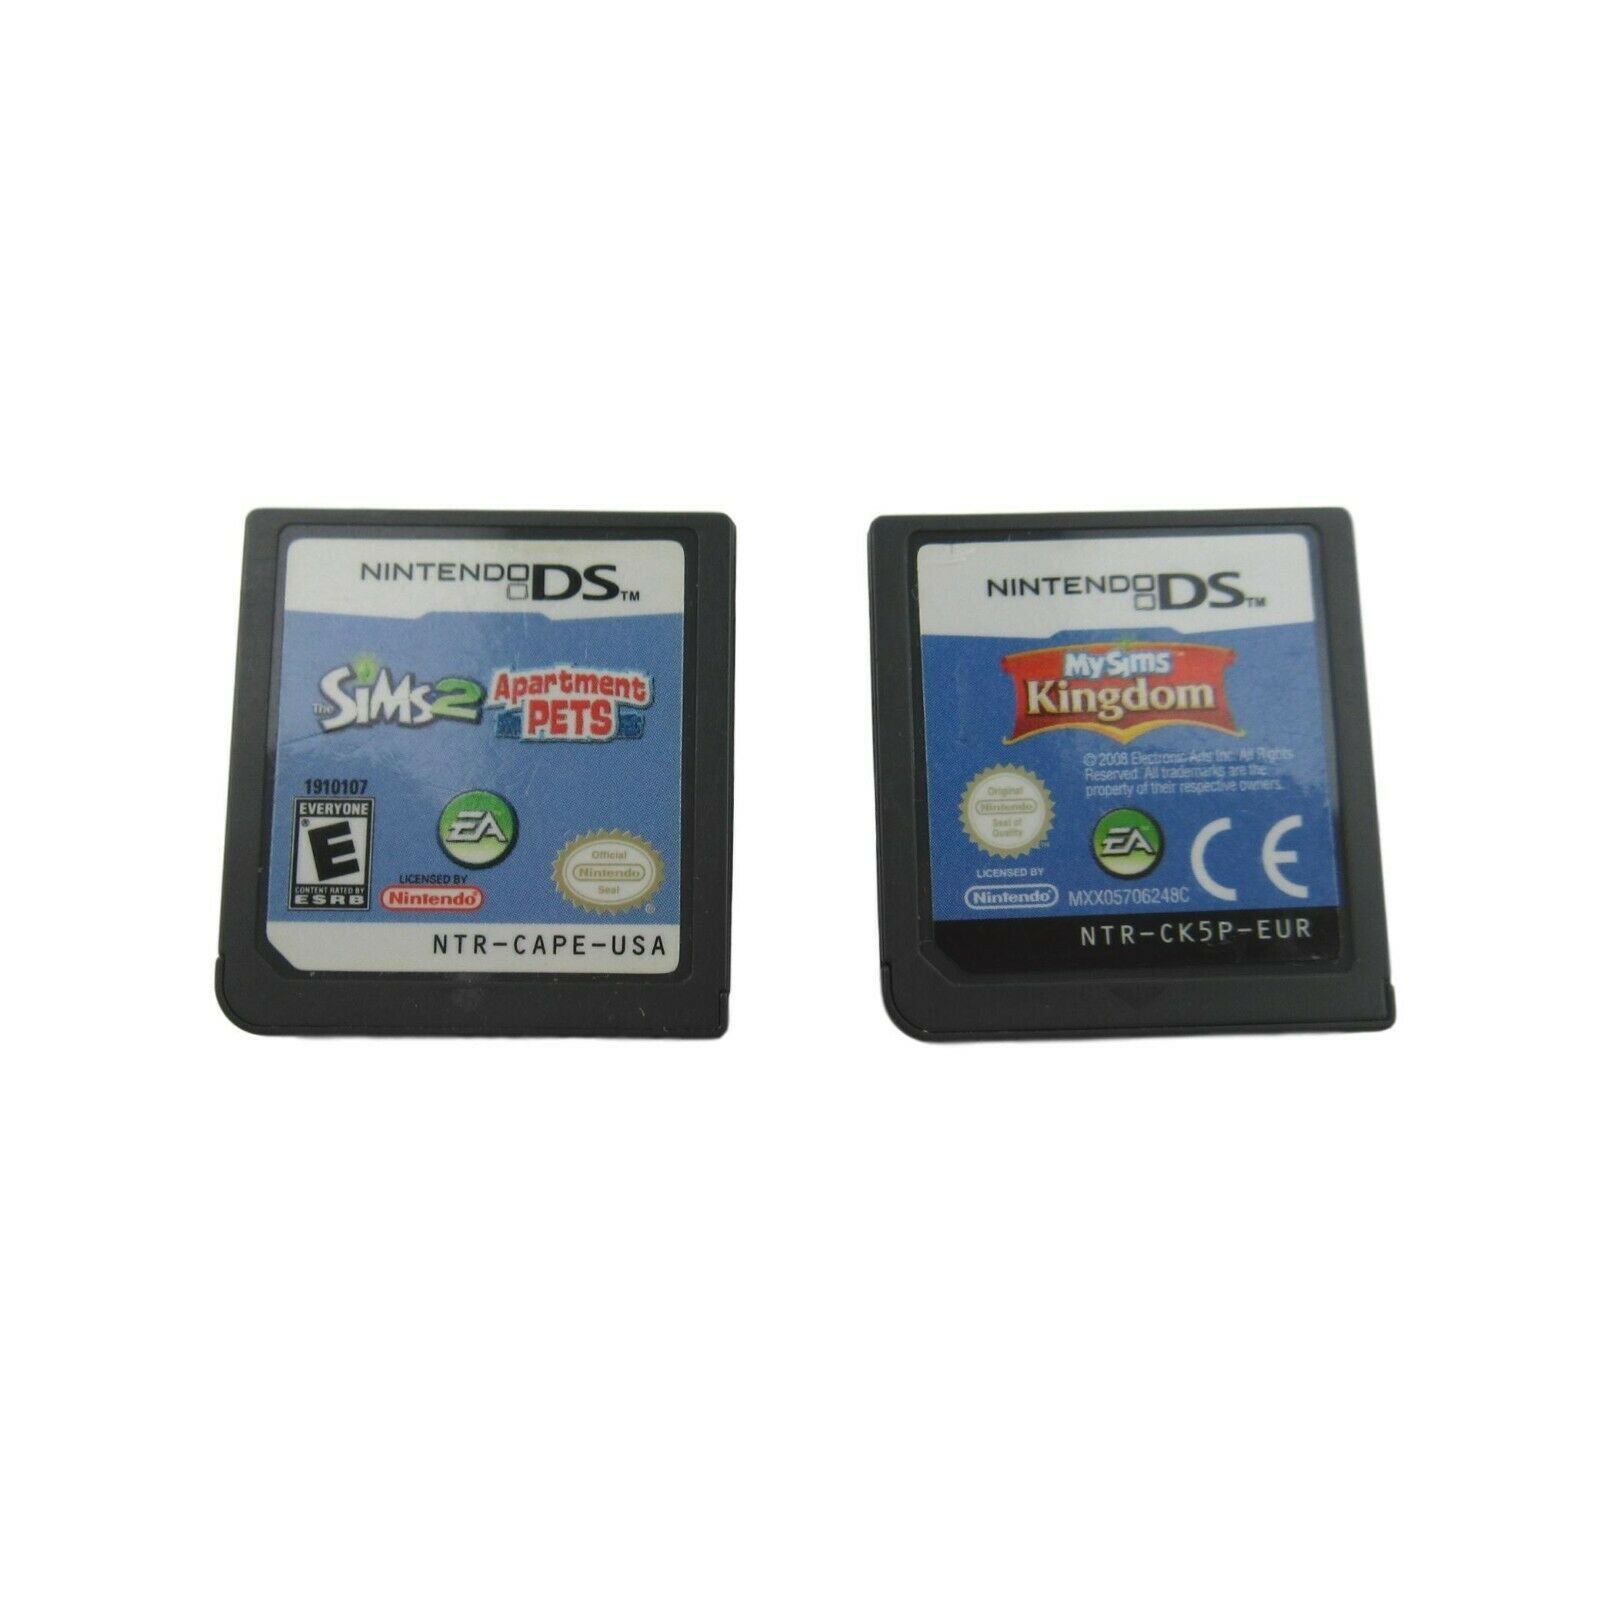 Primary image for Nintendo DS Sims 2 Apartment Pets & MY Sims Kingdom Game LOT Cartridges ONLY